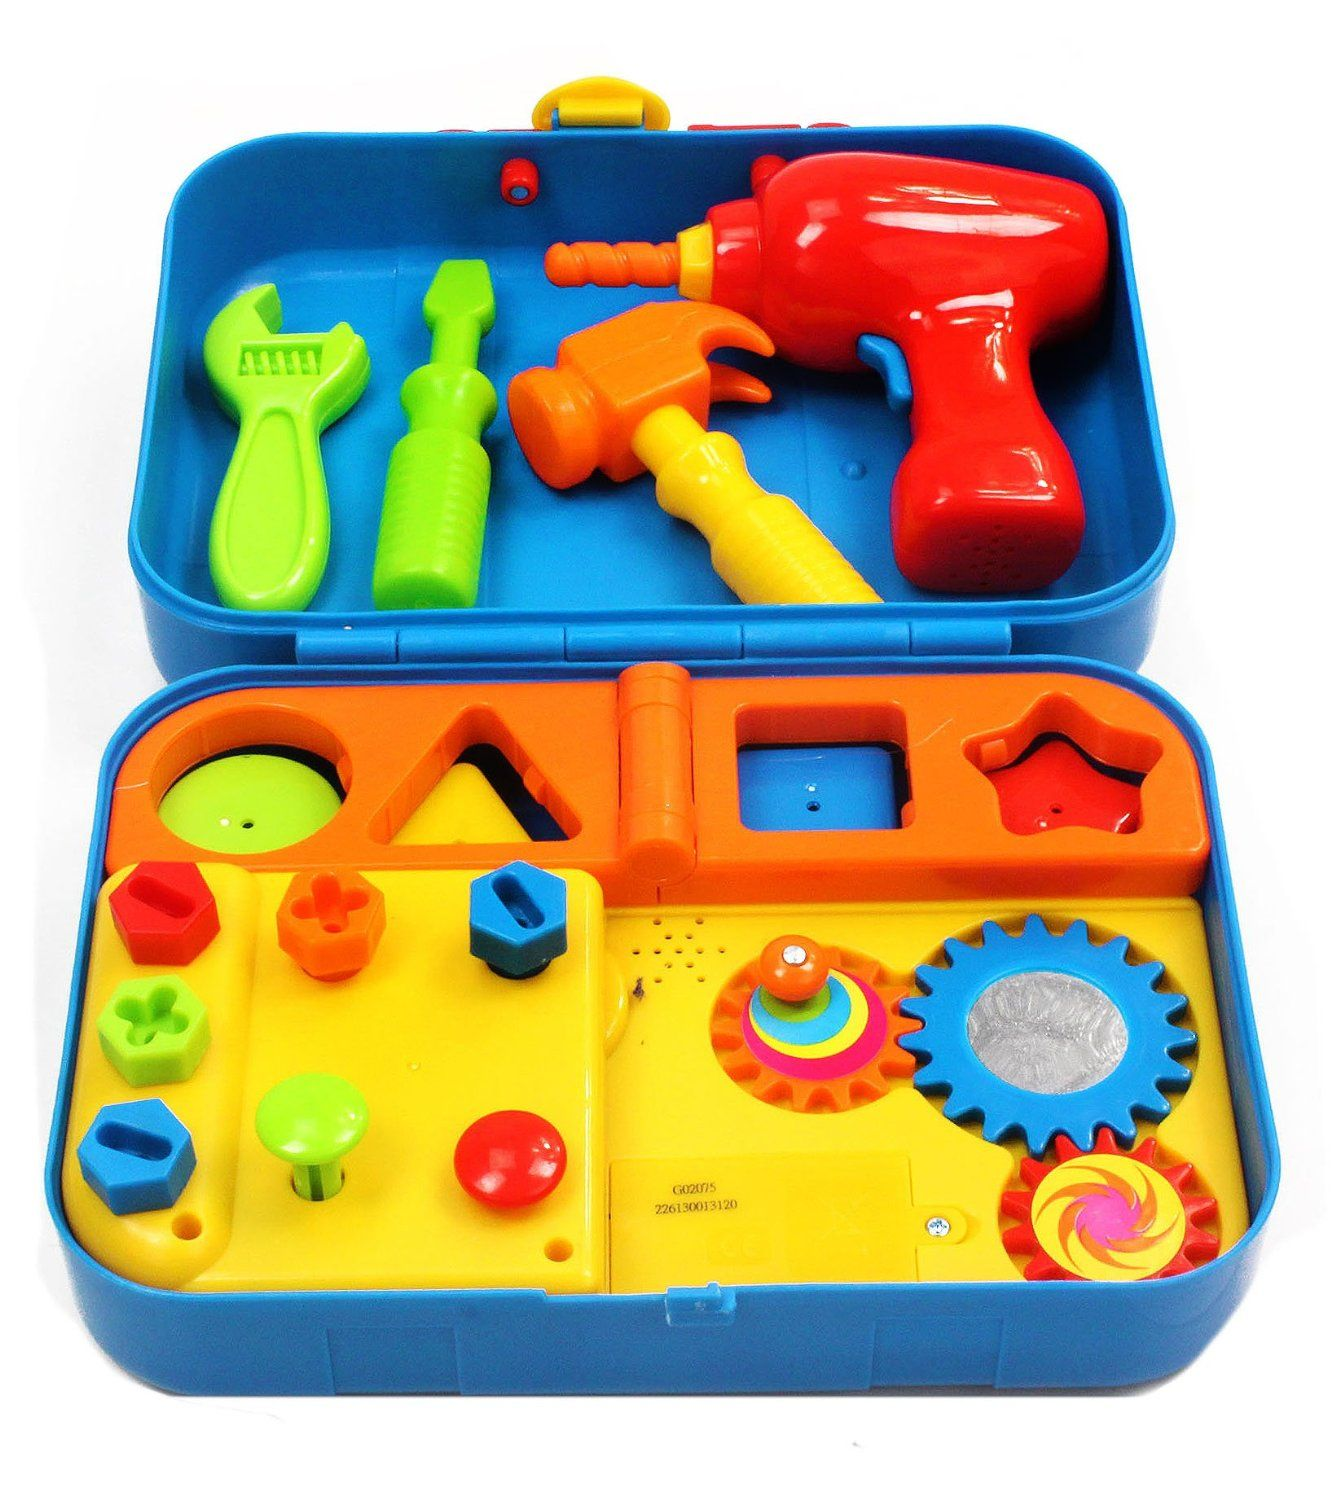 Girl Toys For Boys : Best gifts for year old boys in toolbox toy and